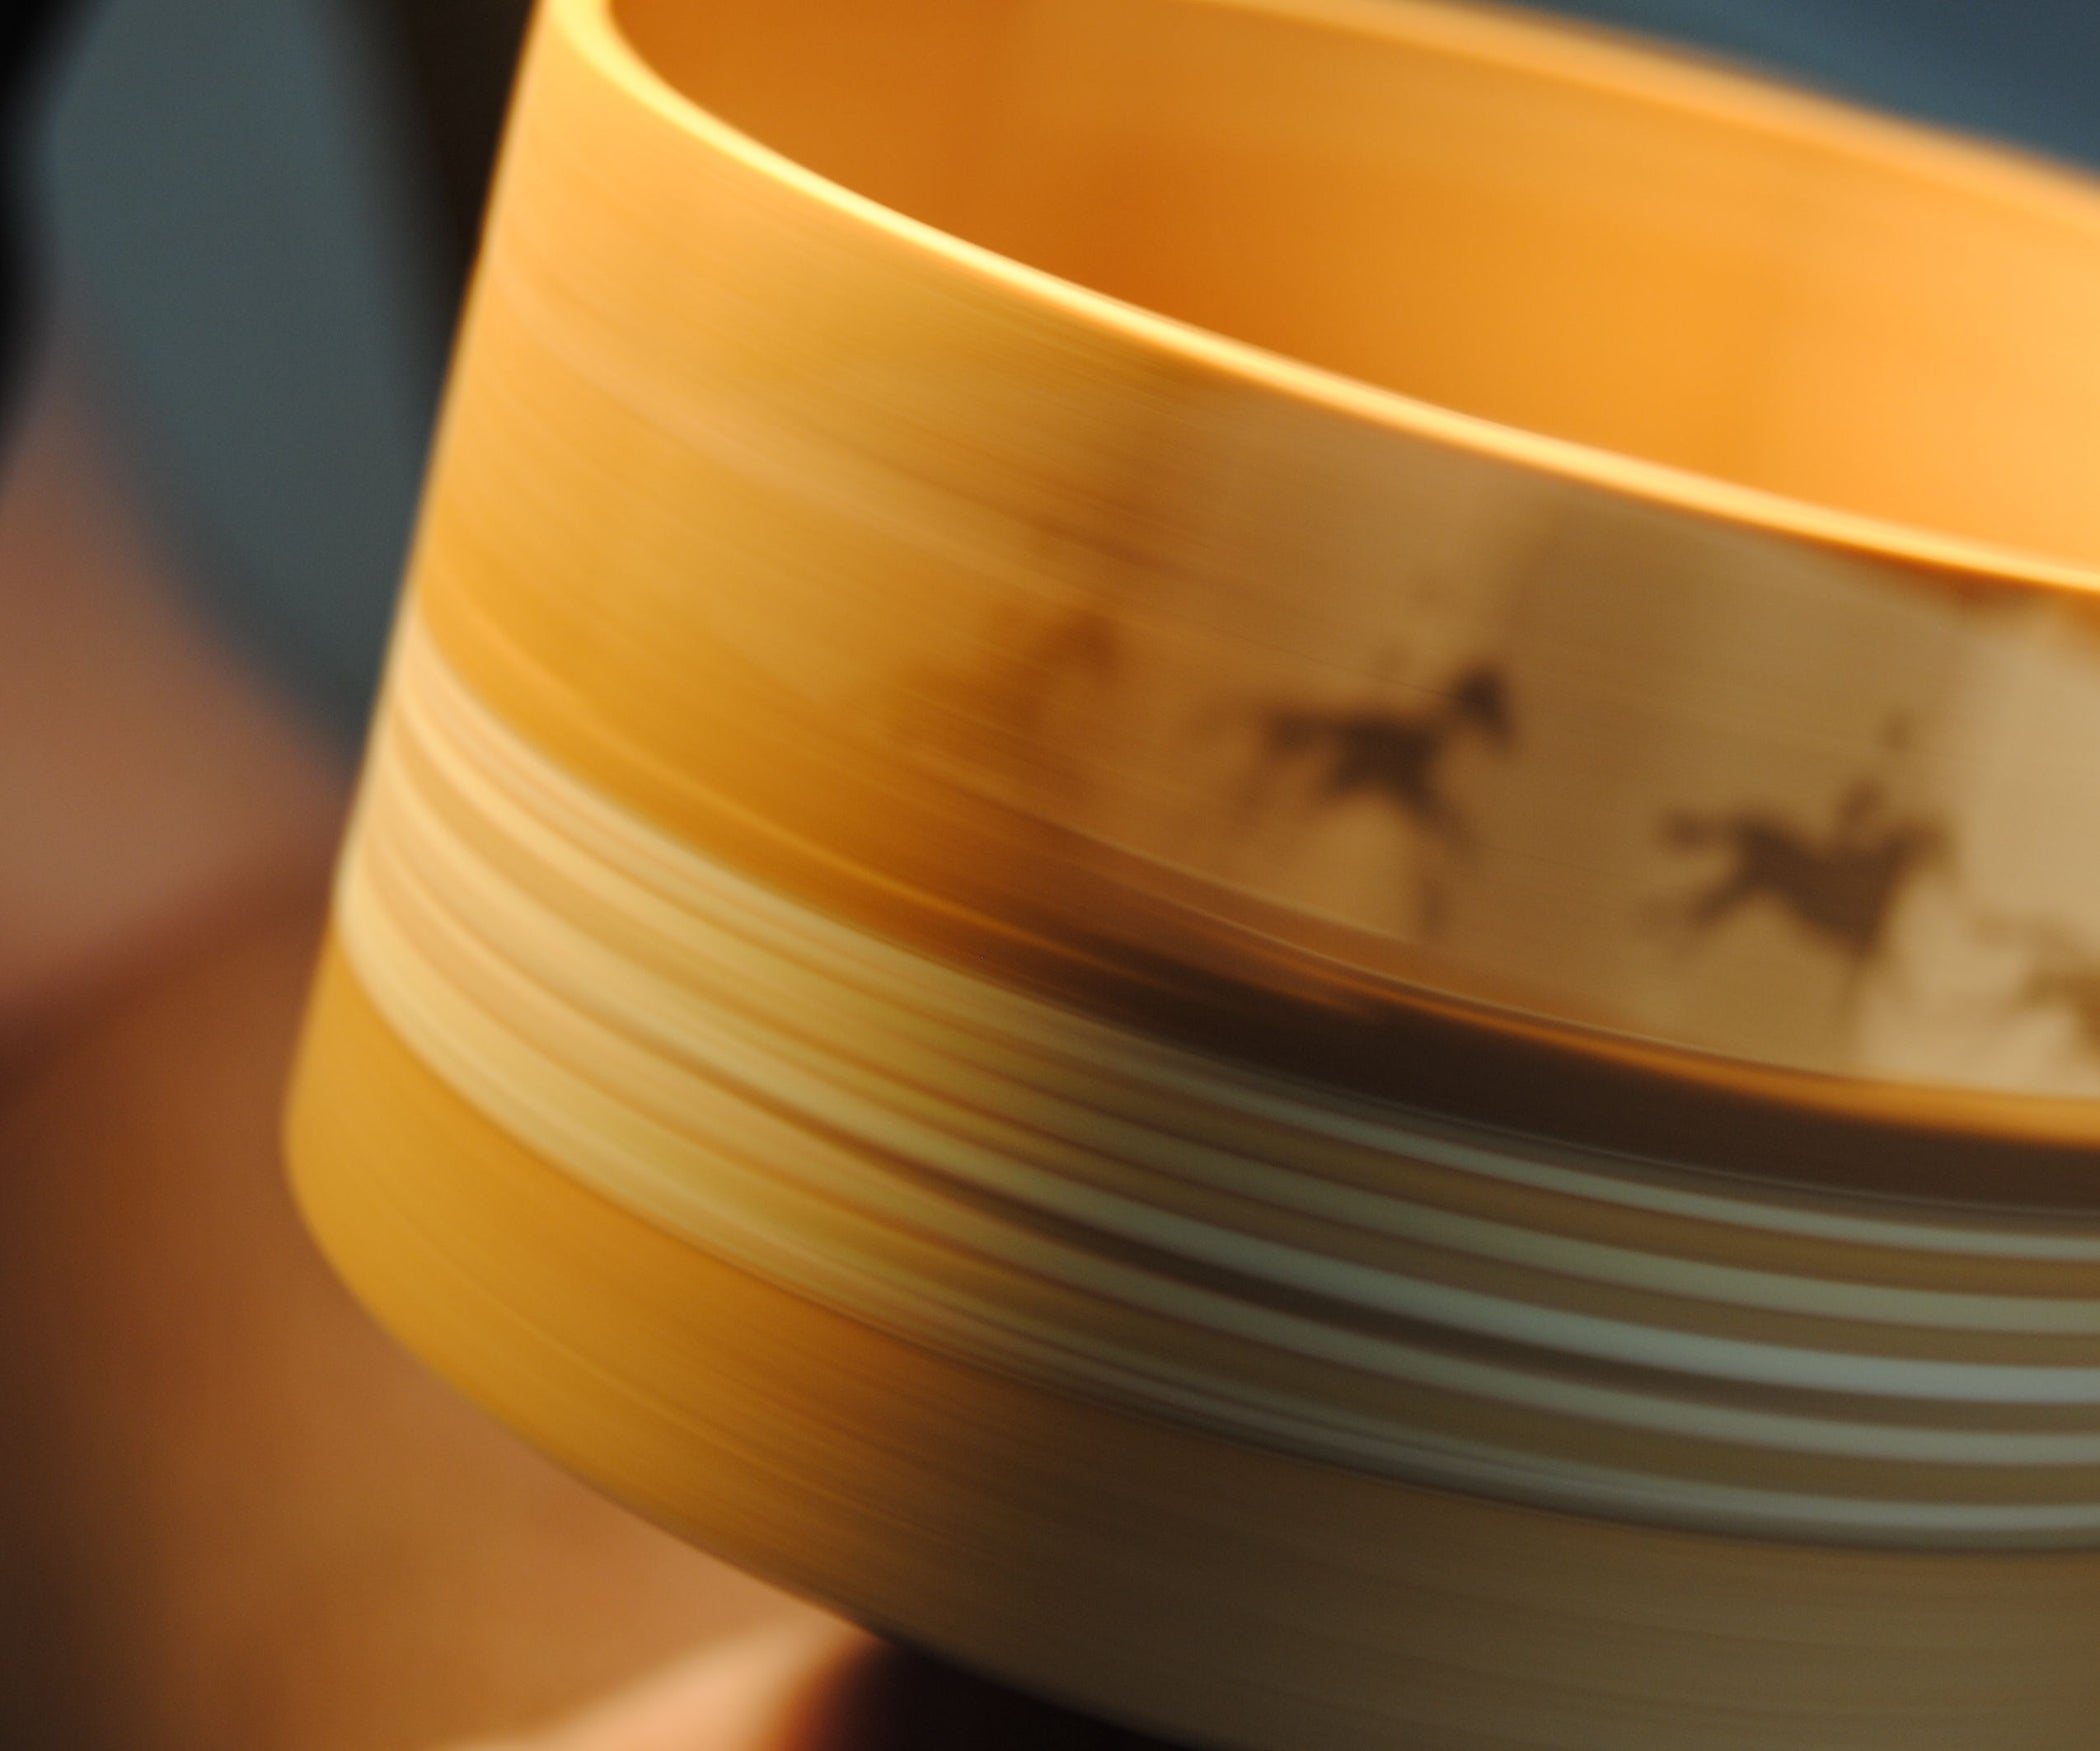 Making the Zoetrope